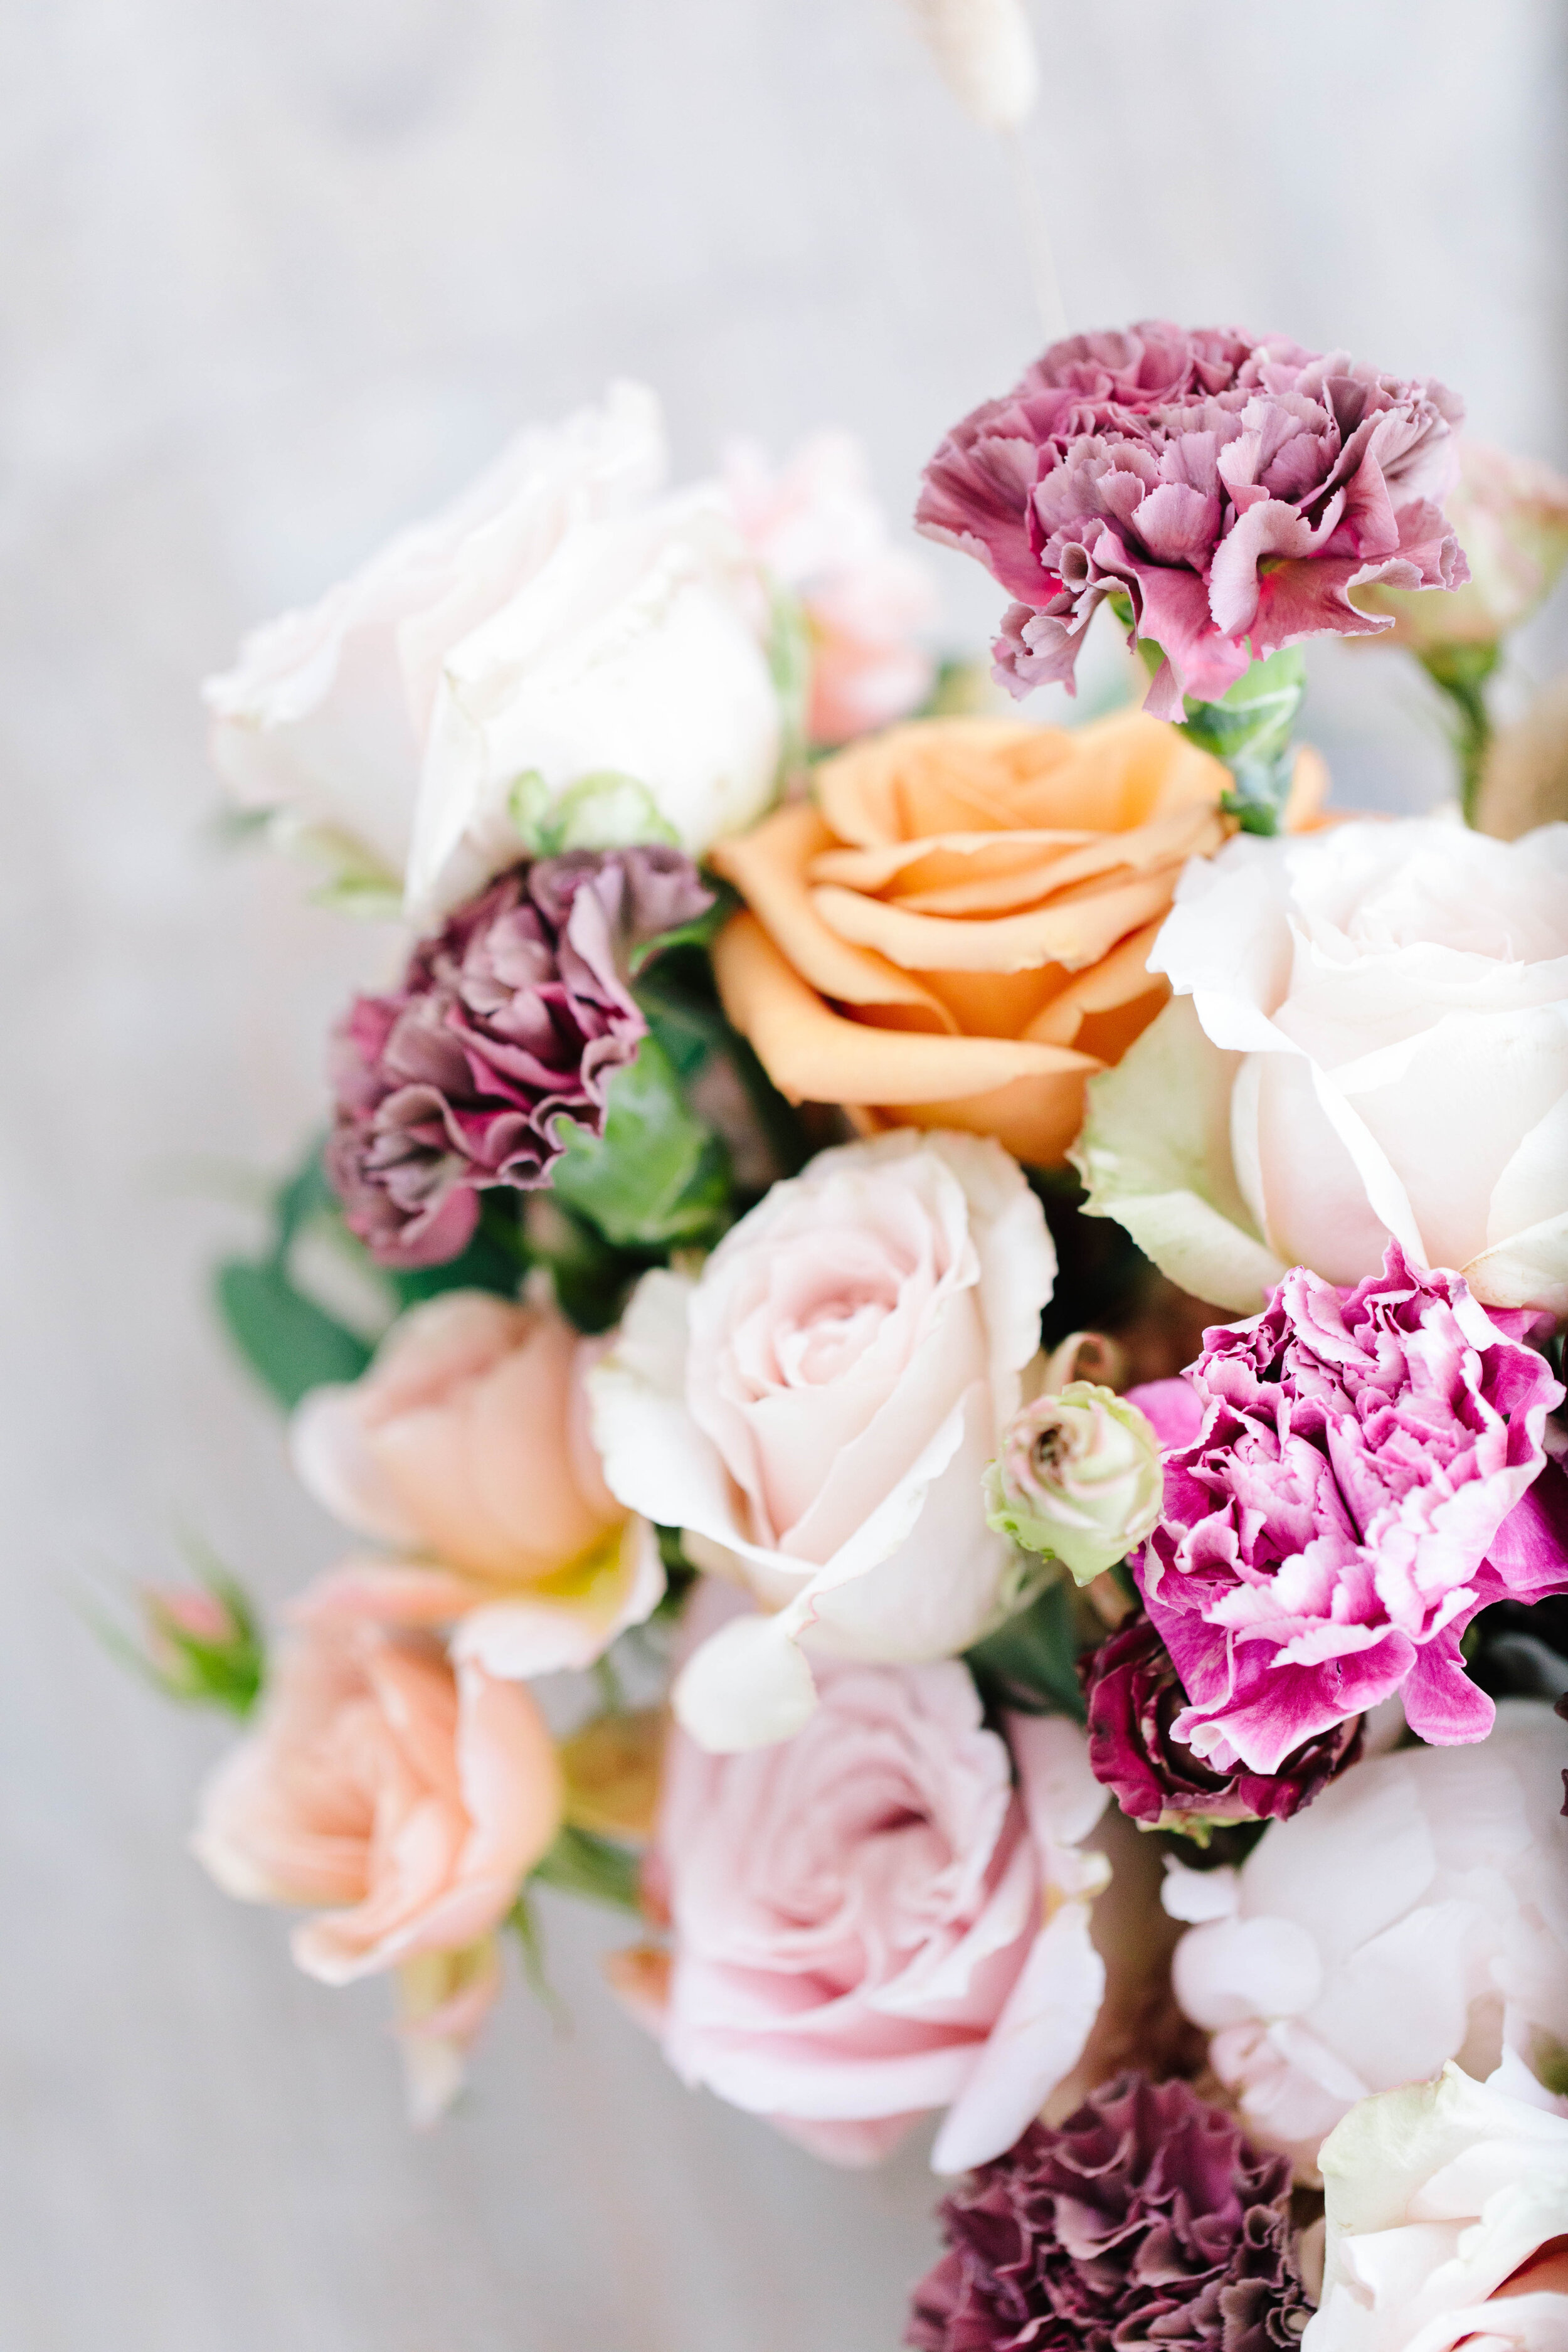 wedding ideas on a budget wedding tips for bride wedding tips and hacks close up on bouquet picture inspiration romantic spring colors wedding bouquet greenery blush colored roses tips for the utah bride provo utah florist tricks #utahflorist #weddingplanning #claritylane #weddingbouquetinspiration #weddingflorals #softbrightlighting #provoutahflorist #provoutah #weddinginspo #provoweddingphotorapher